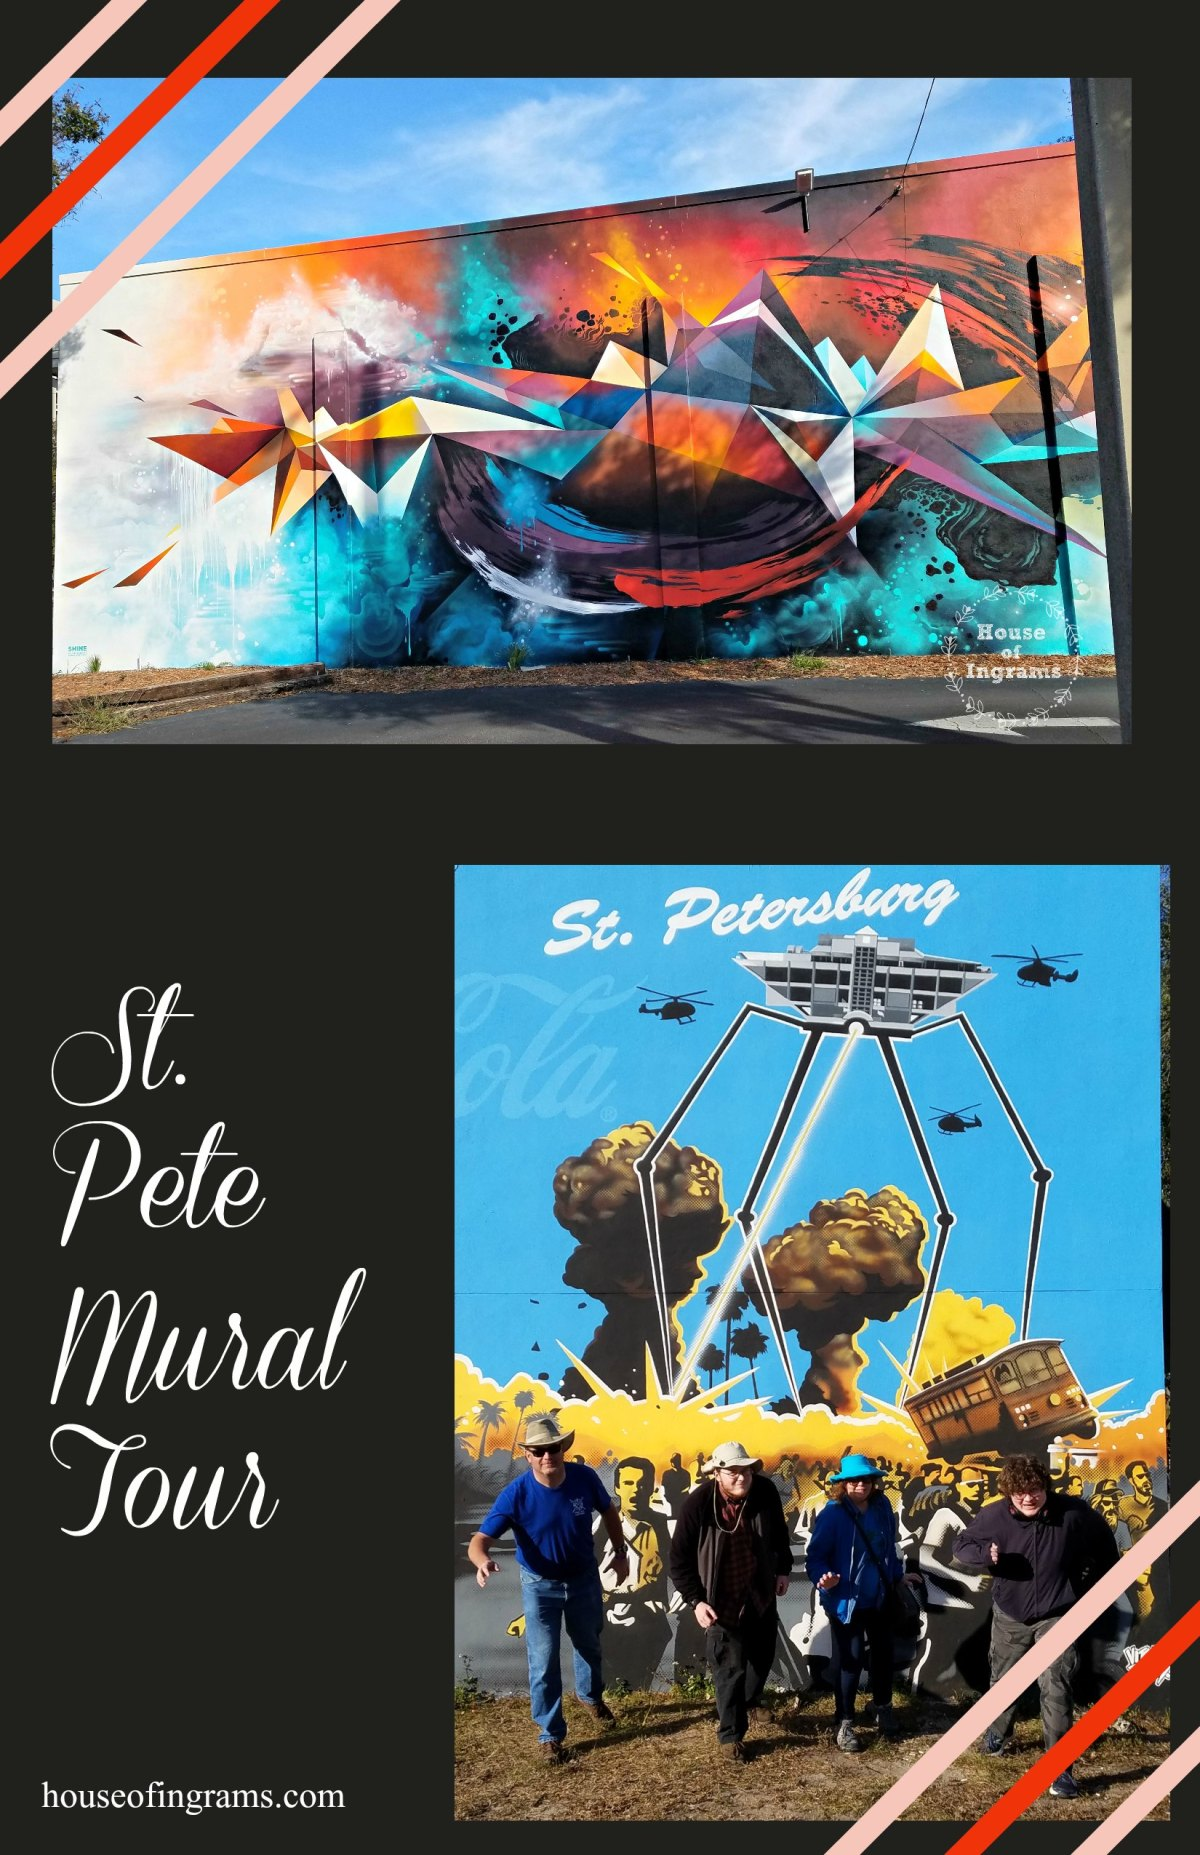 St. Petersburg Mural Tour